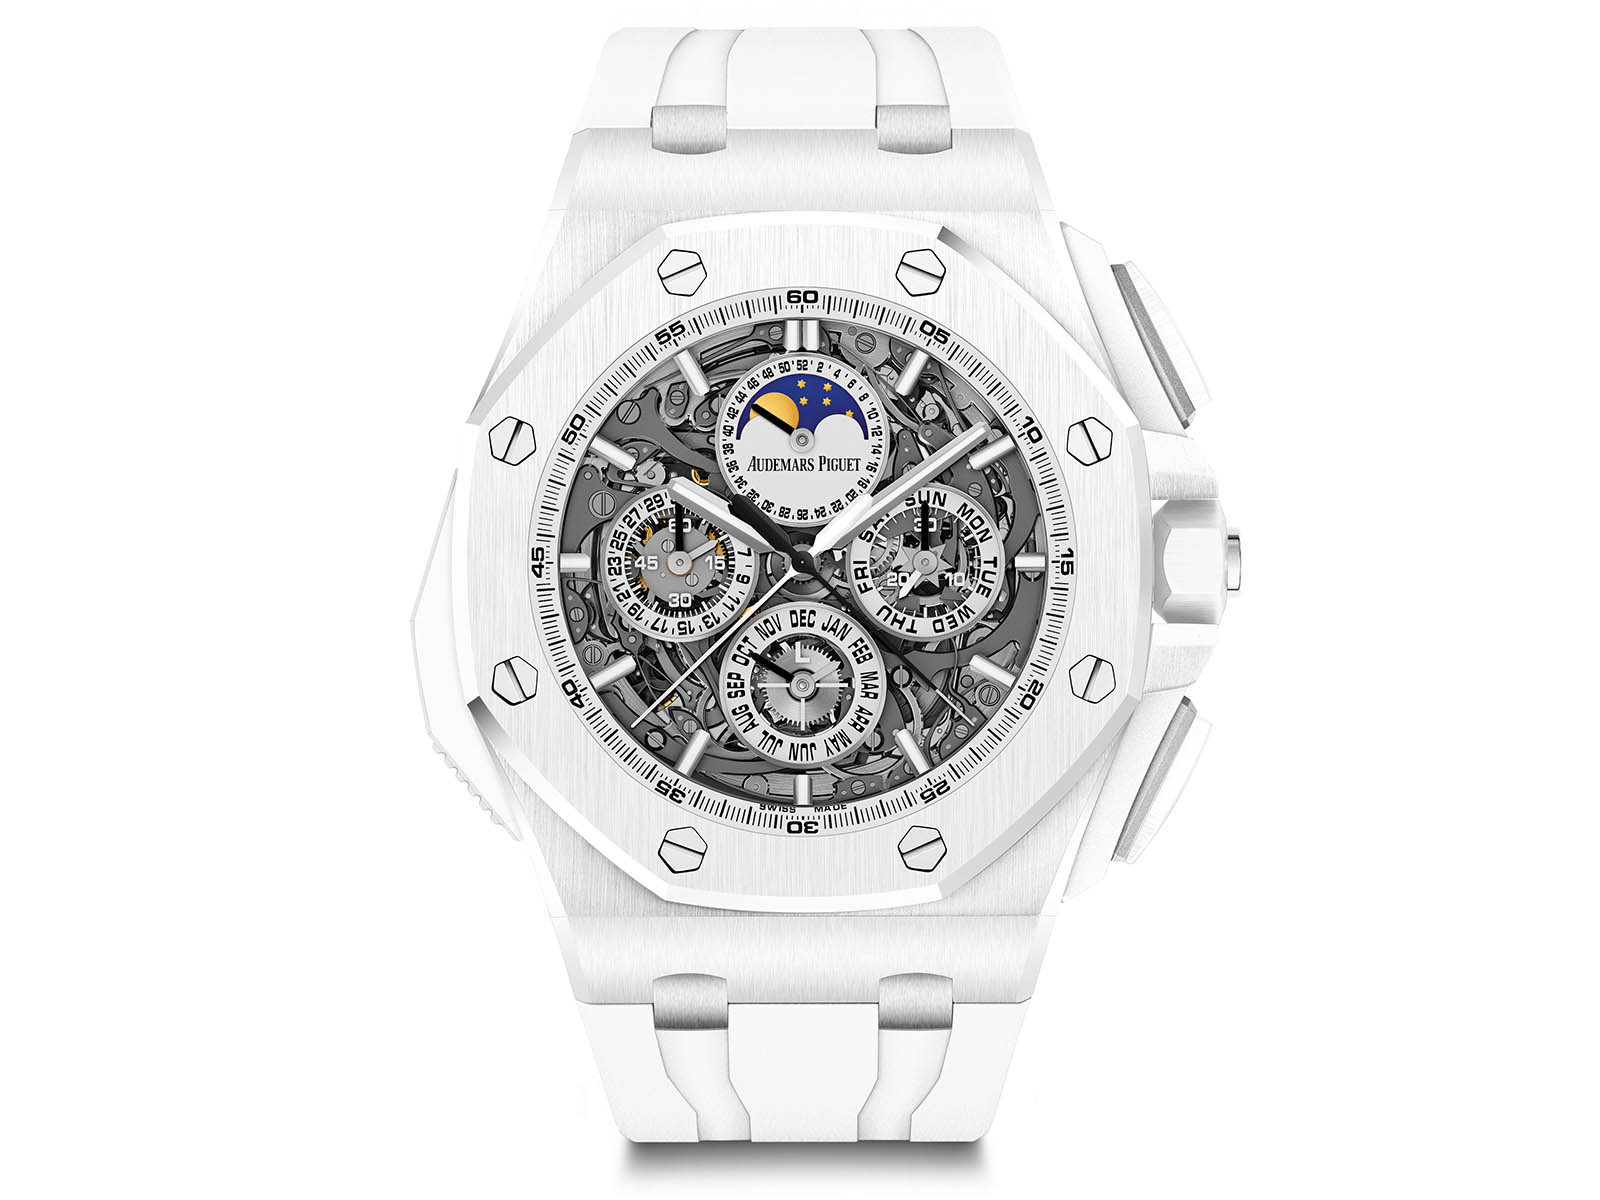 26582cb-oo-a010ca-01-audemars-piguet-royal-oak-offshore-grande-complication-1.jpg